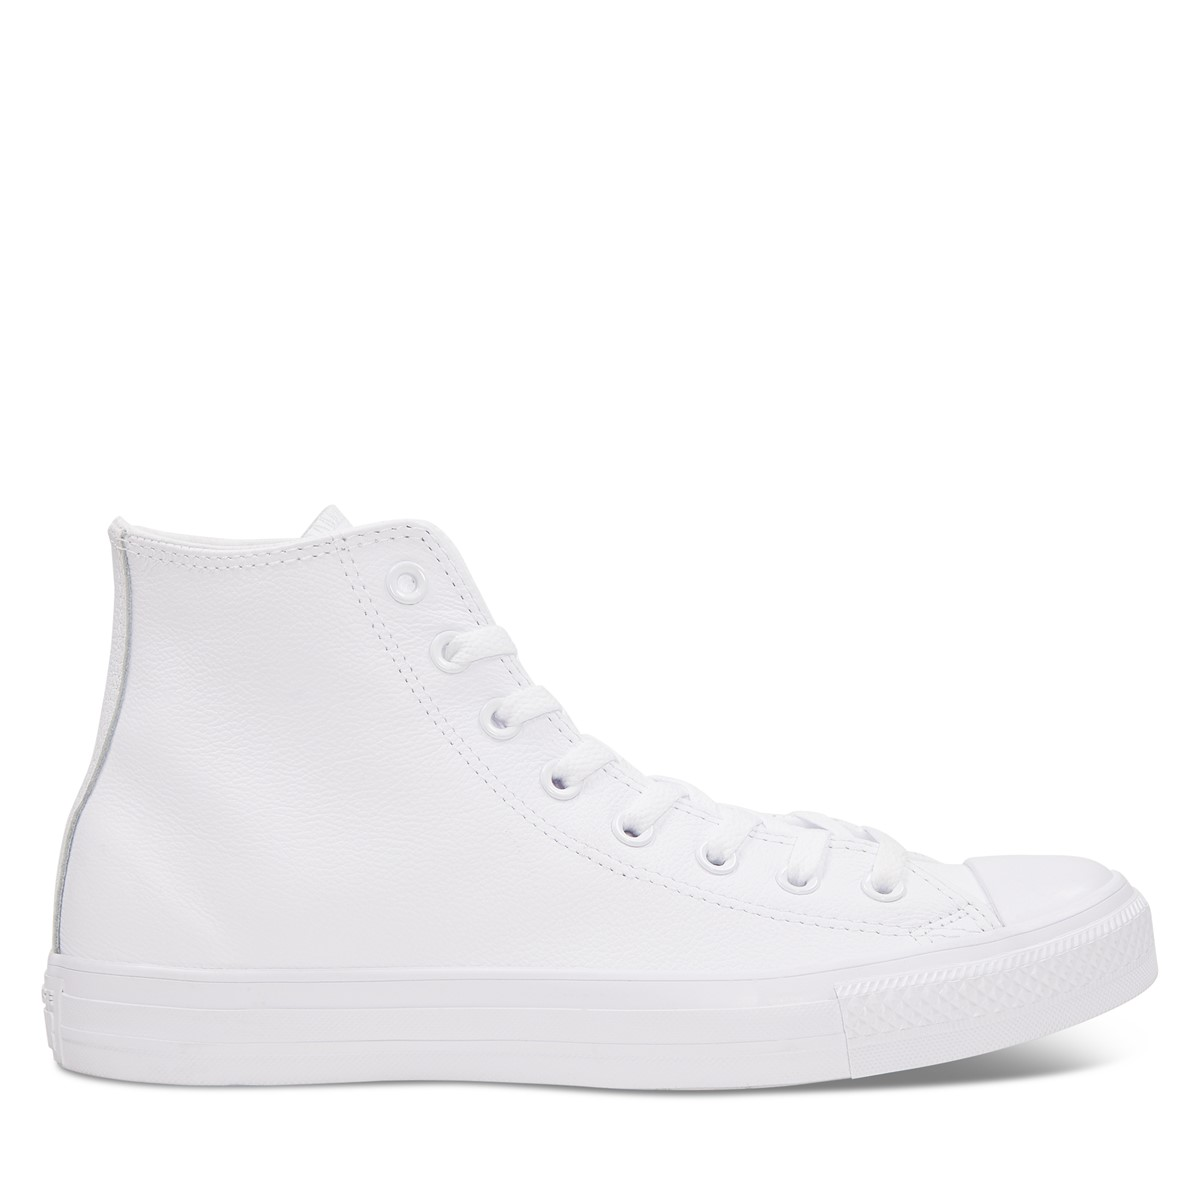 Chuck Taylor All Star Hi Sneakers in Mono White